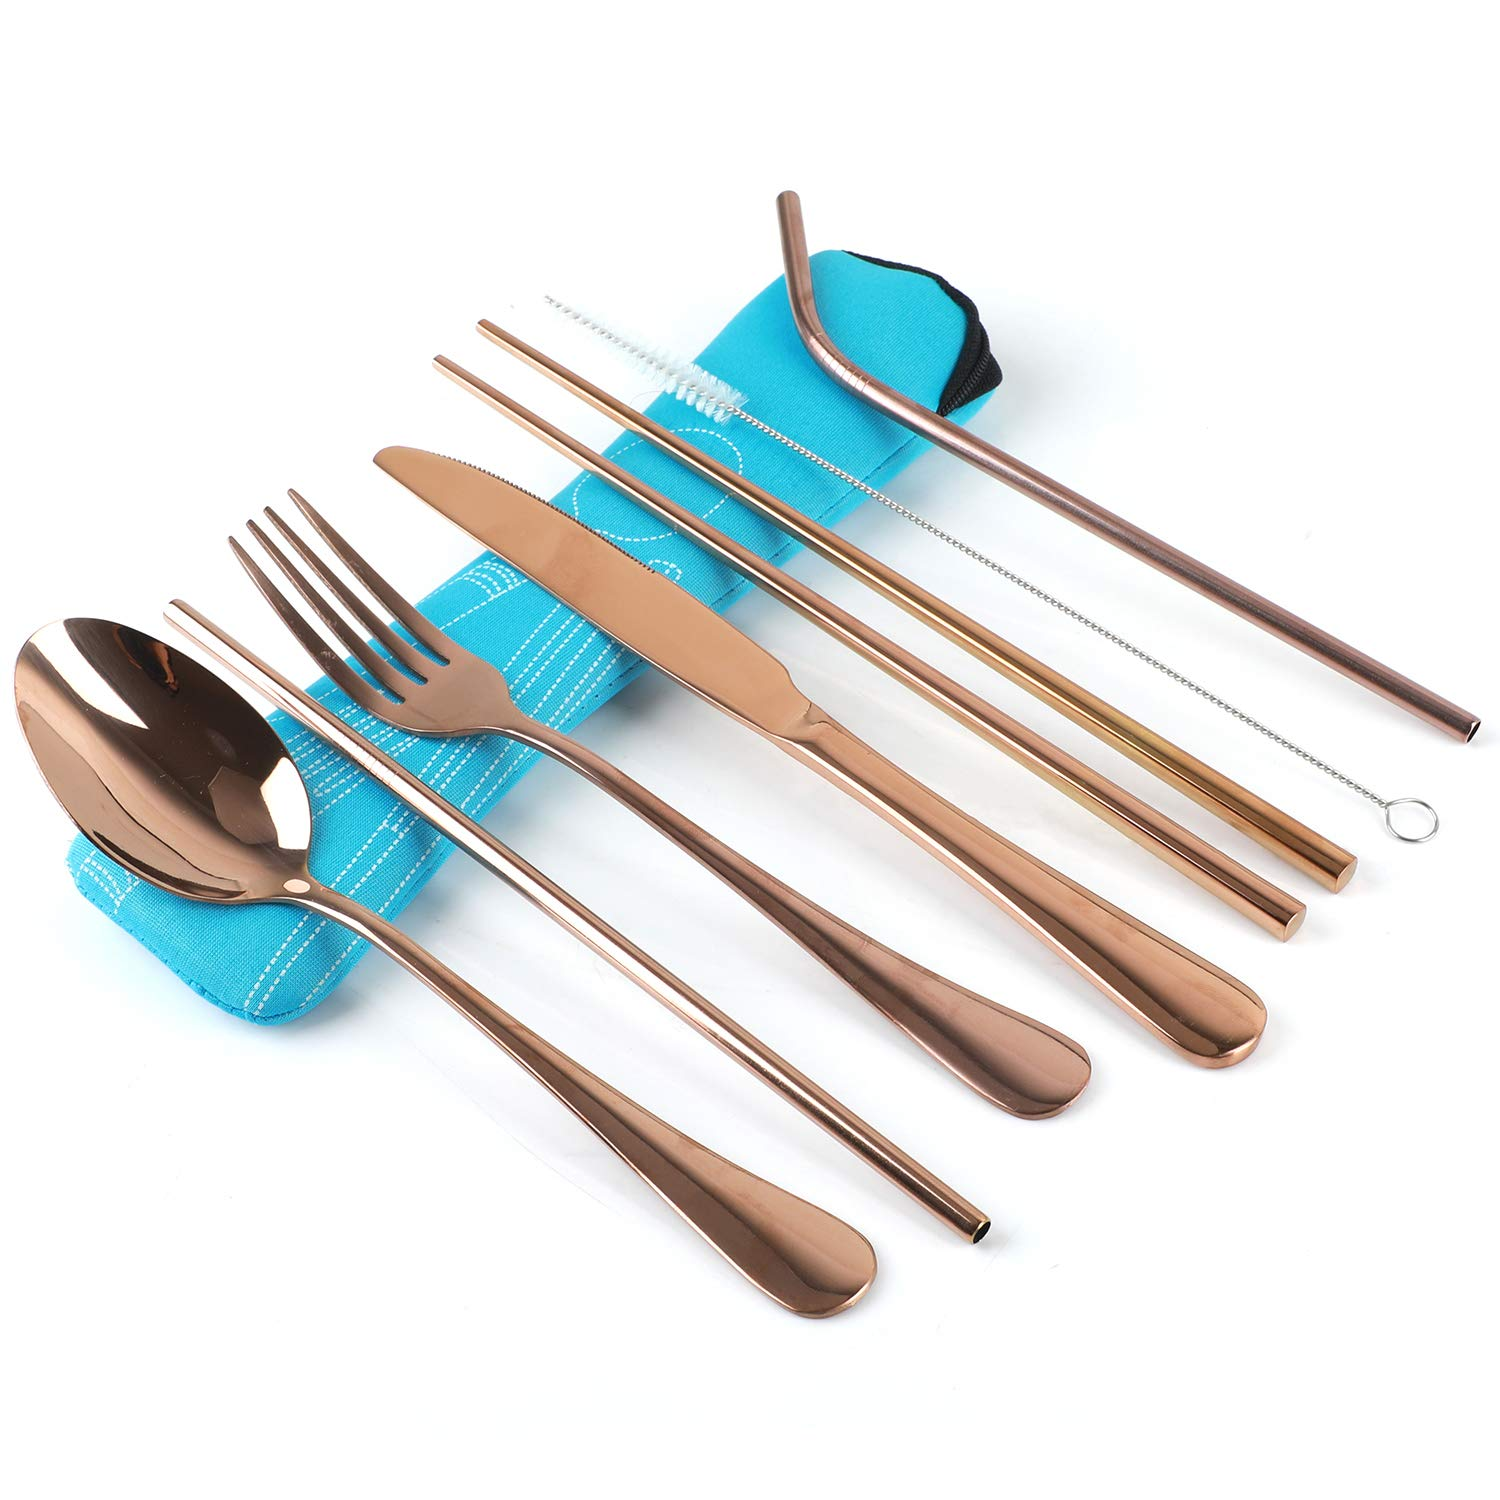 Stainless Steel Flatware Set Reusable Cutlery Set Travel Utensils Set with Straws for Camping Office or School Lunch,Dishwasher Safe Black